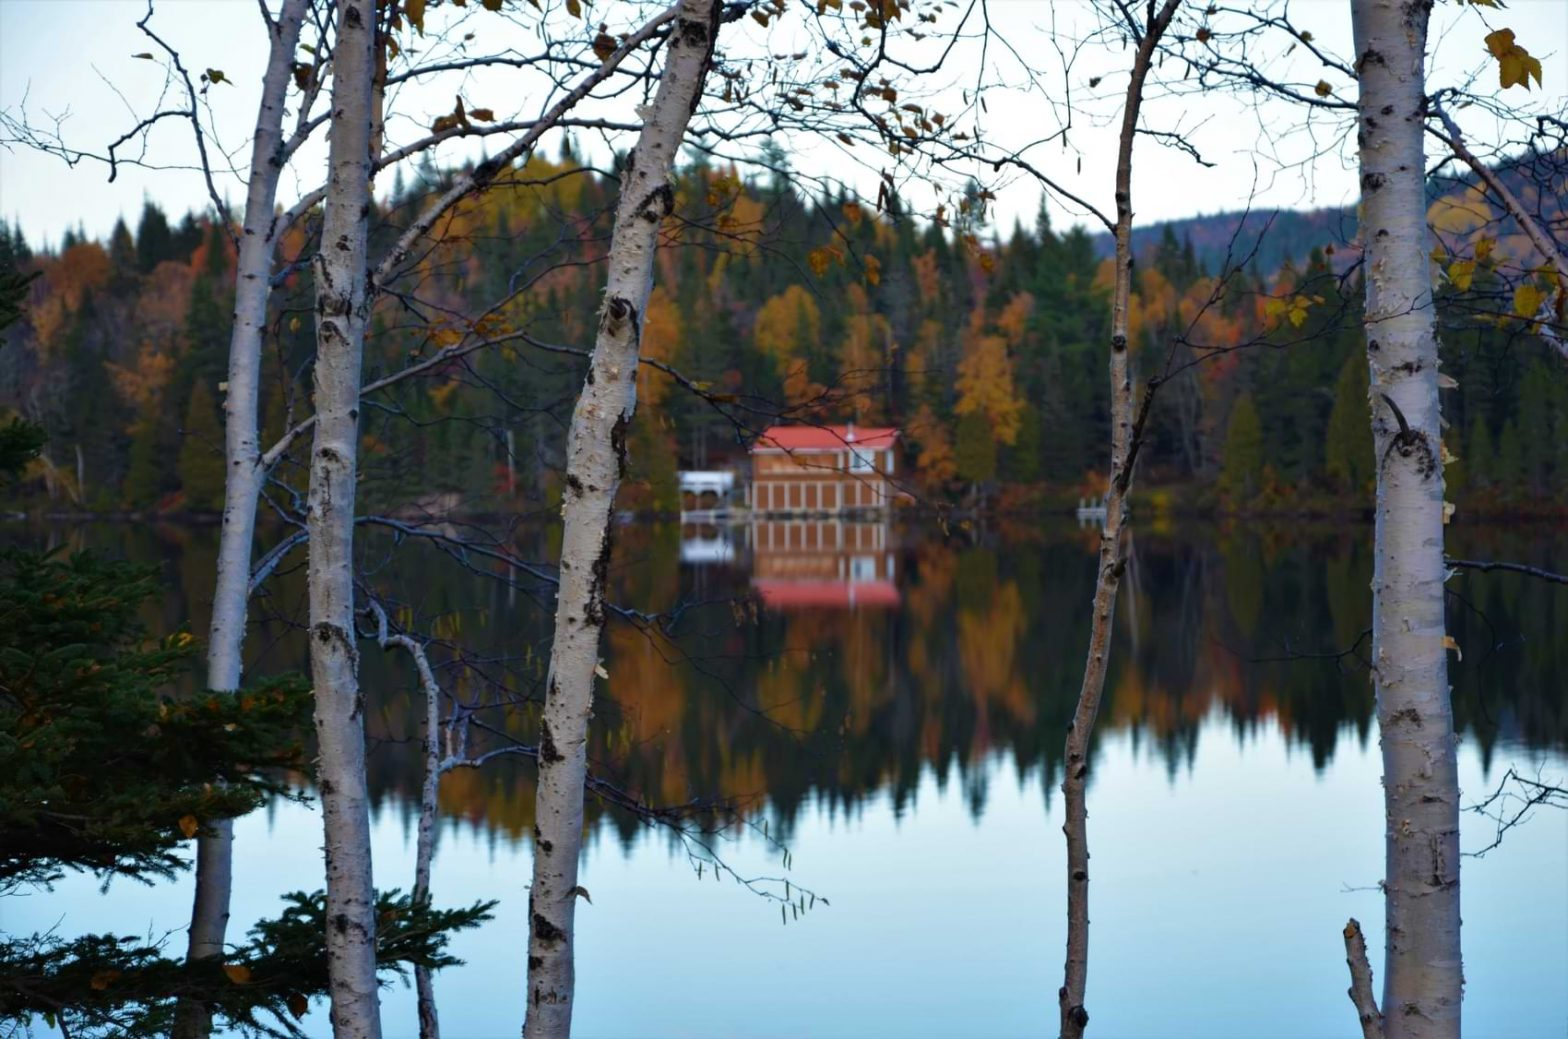 A cabin in Fjord-du-Saguenay surrounded by trees and a reflective lake